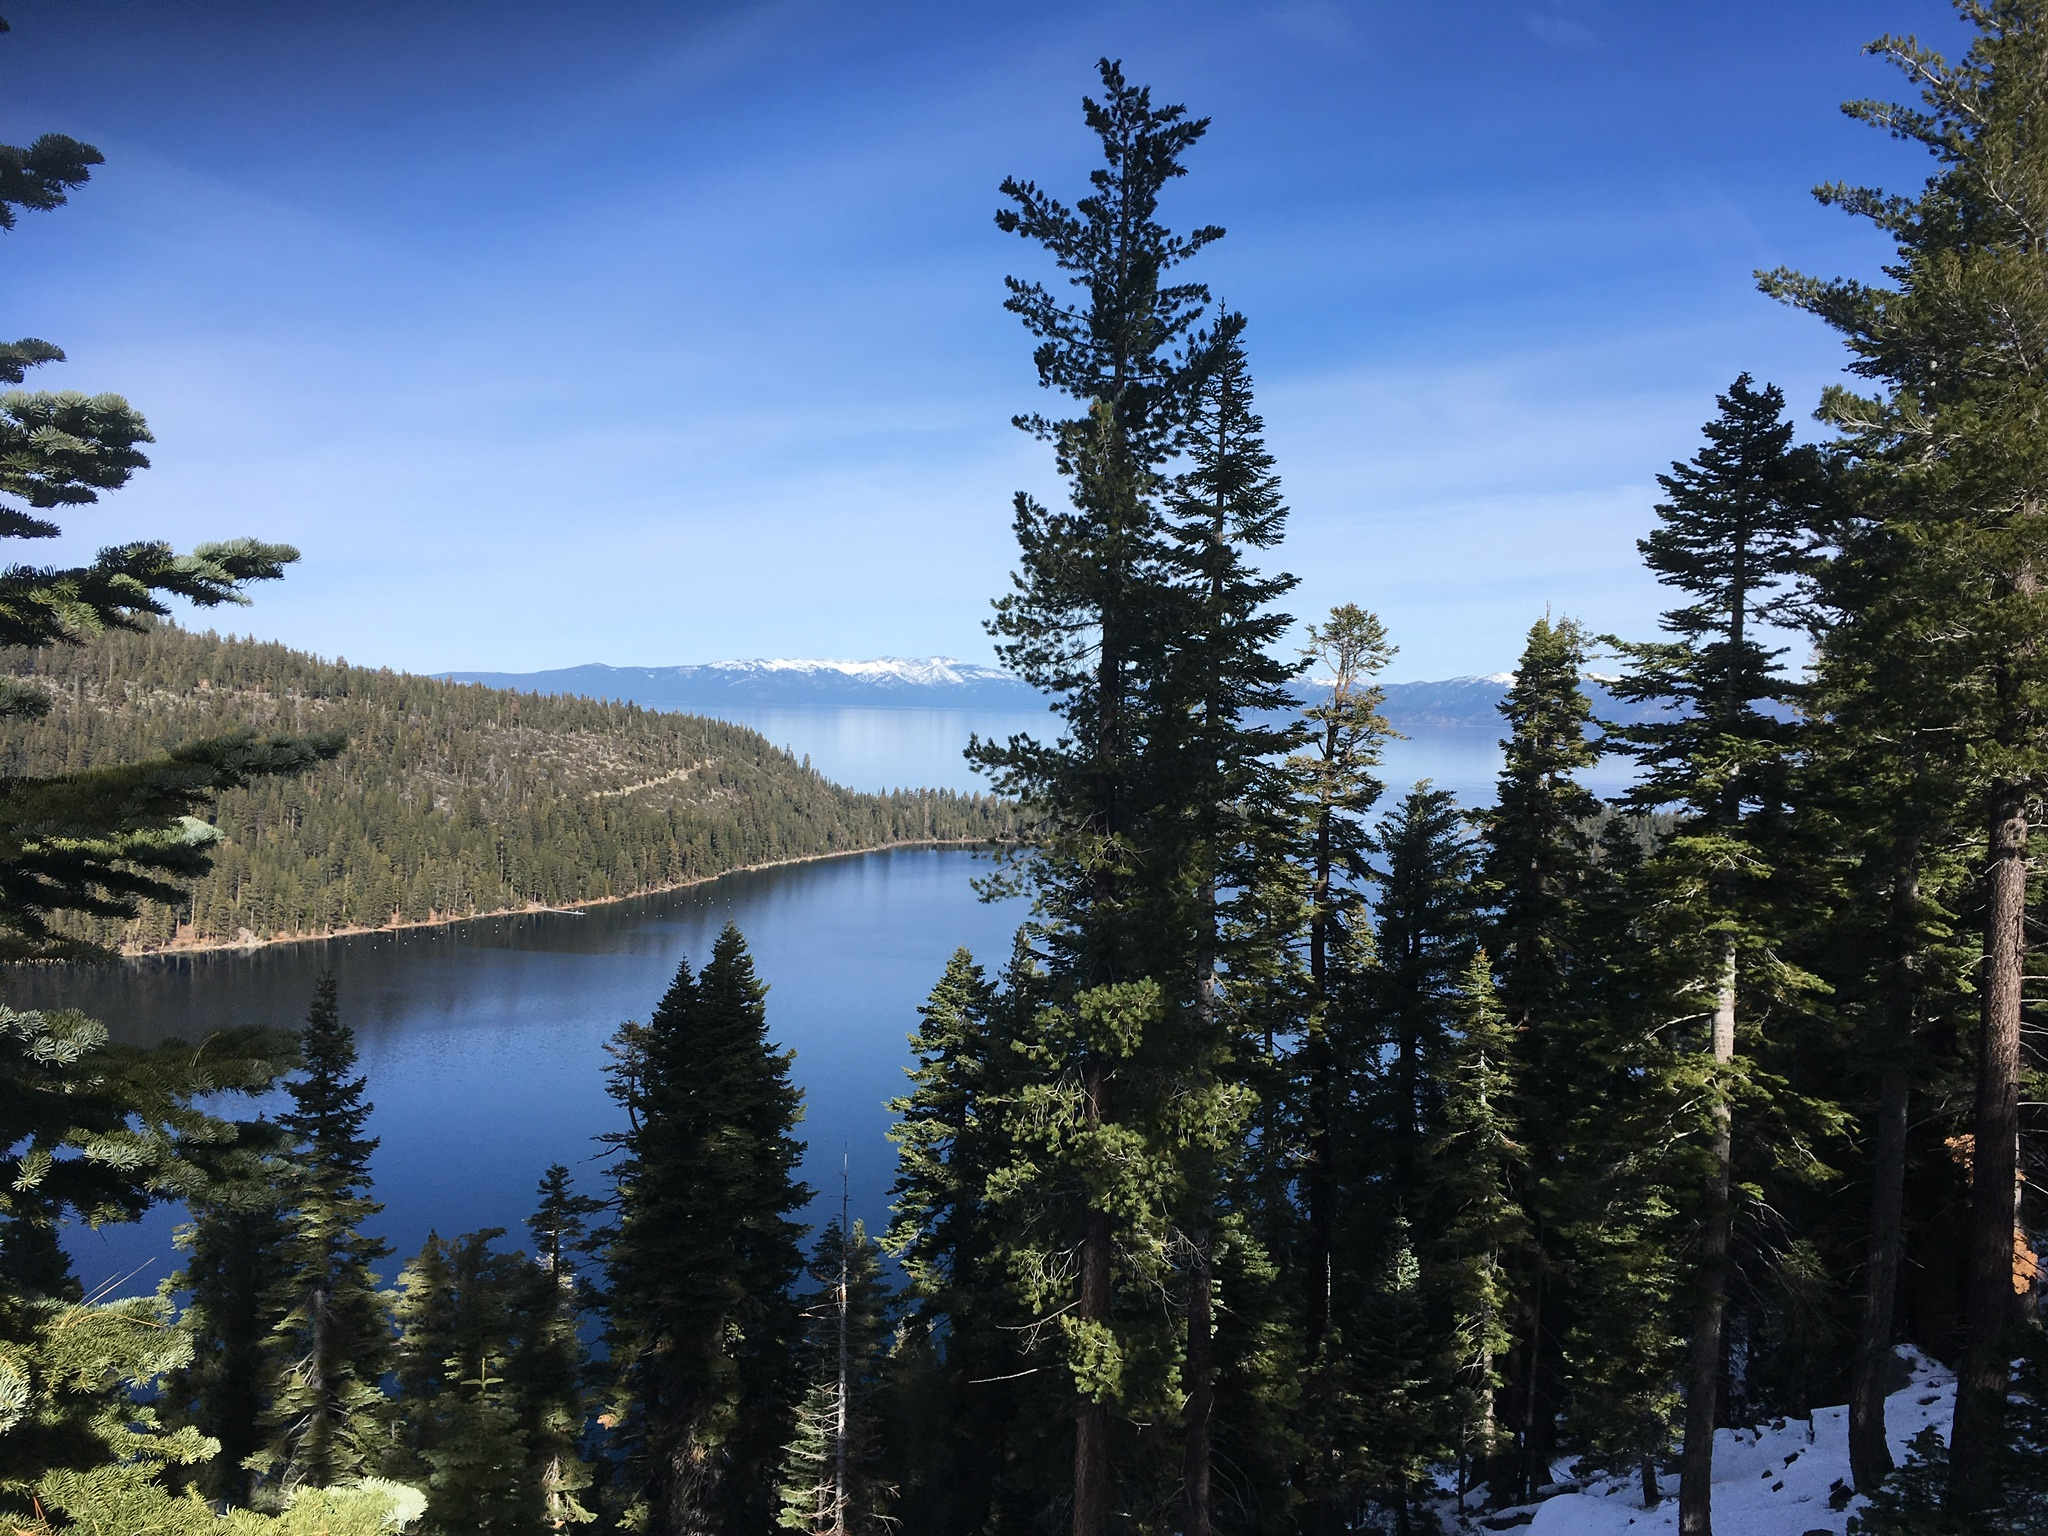 Inspiration point in Lake Tahoe